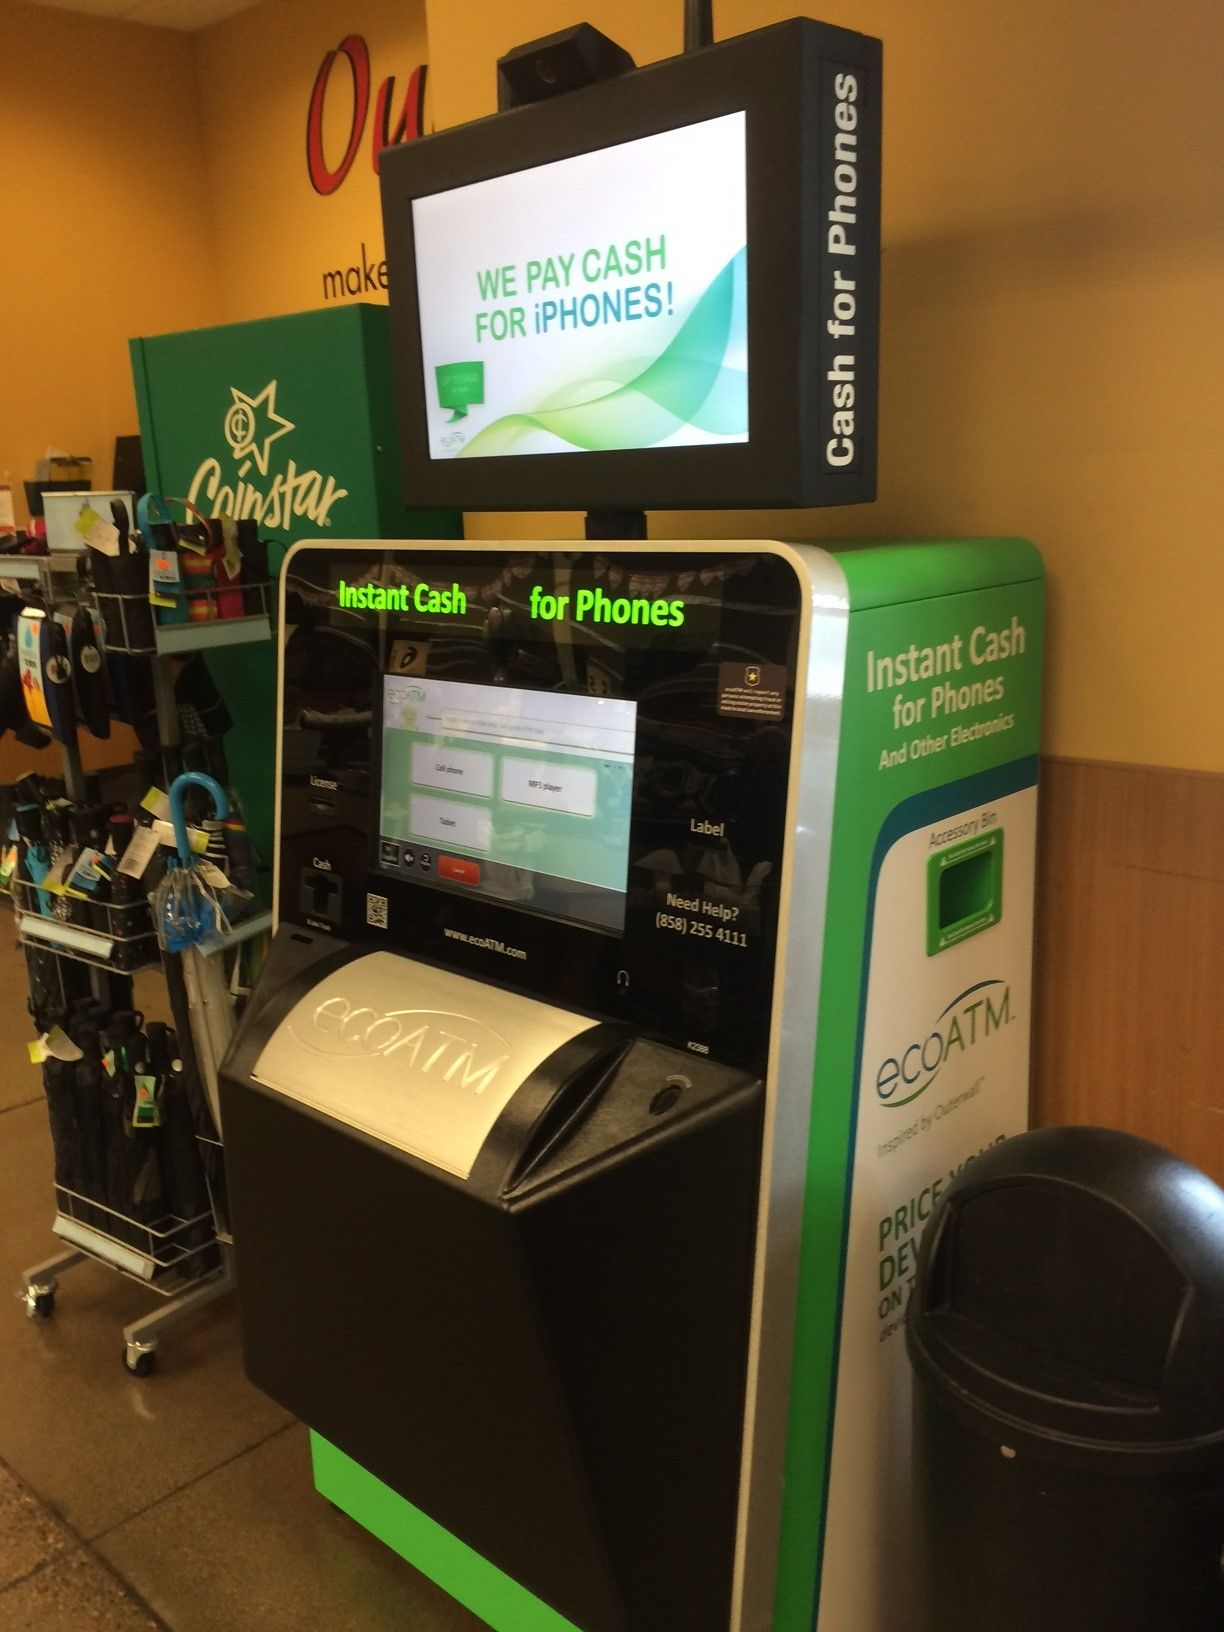 This ecoATM kiosk can be found at Fry's on 3100 N Glassford Hill